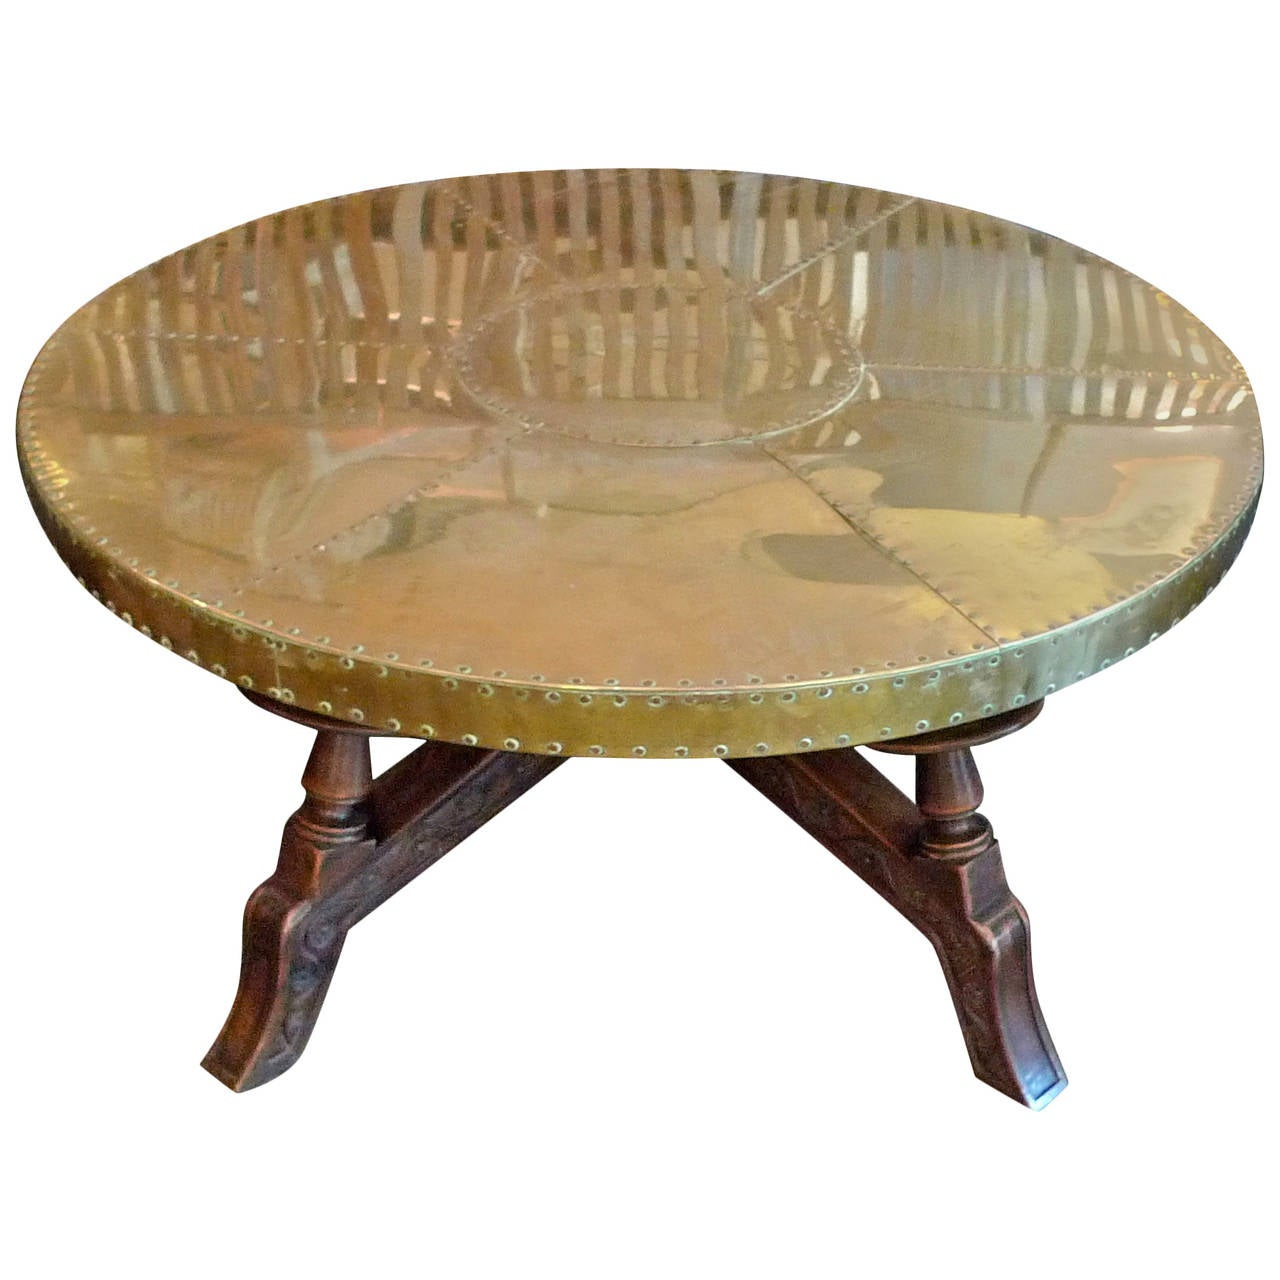 Spanish Arts And Crafts Brass Plated Coffee Table At 1stdibs